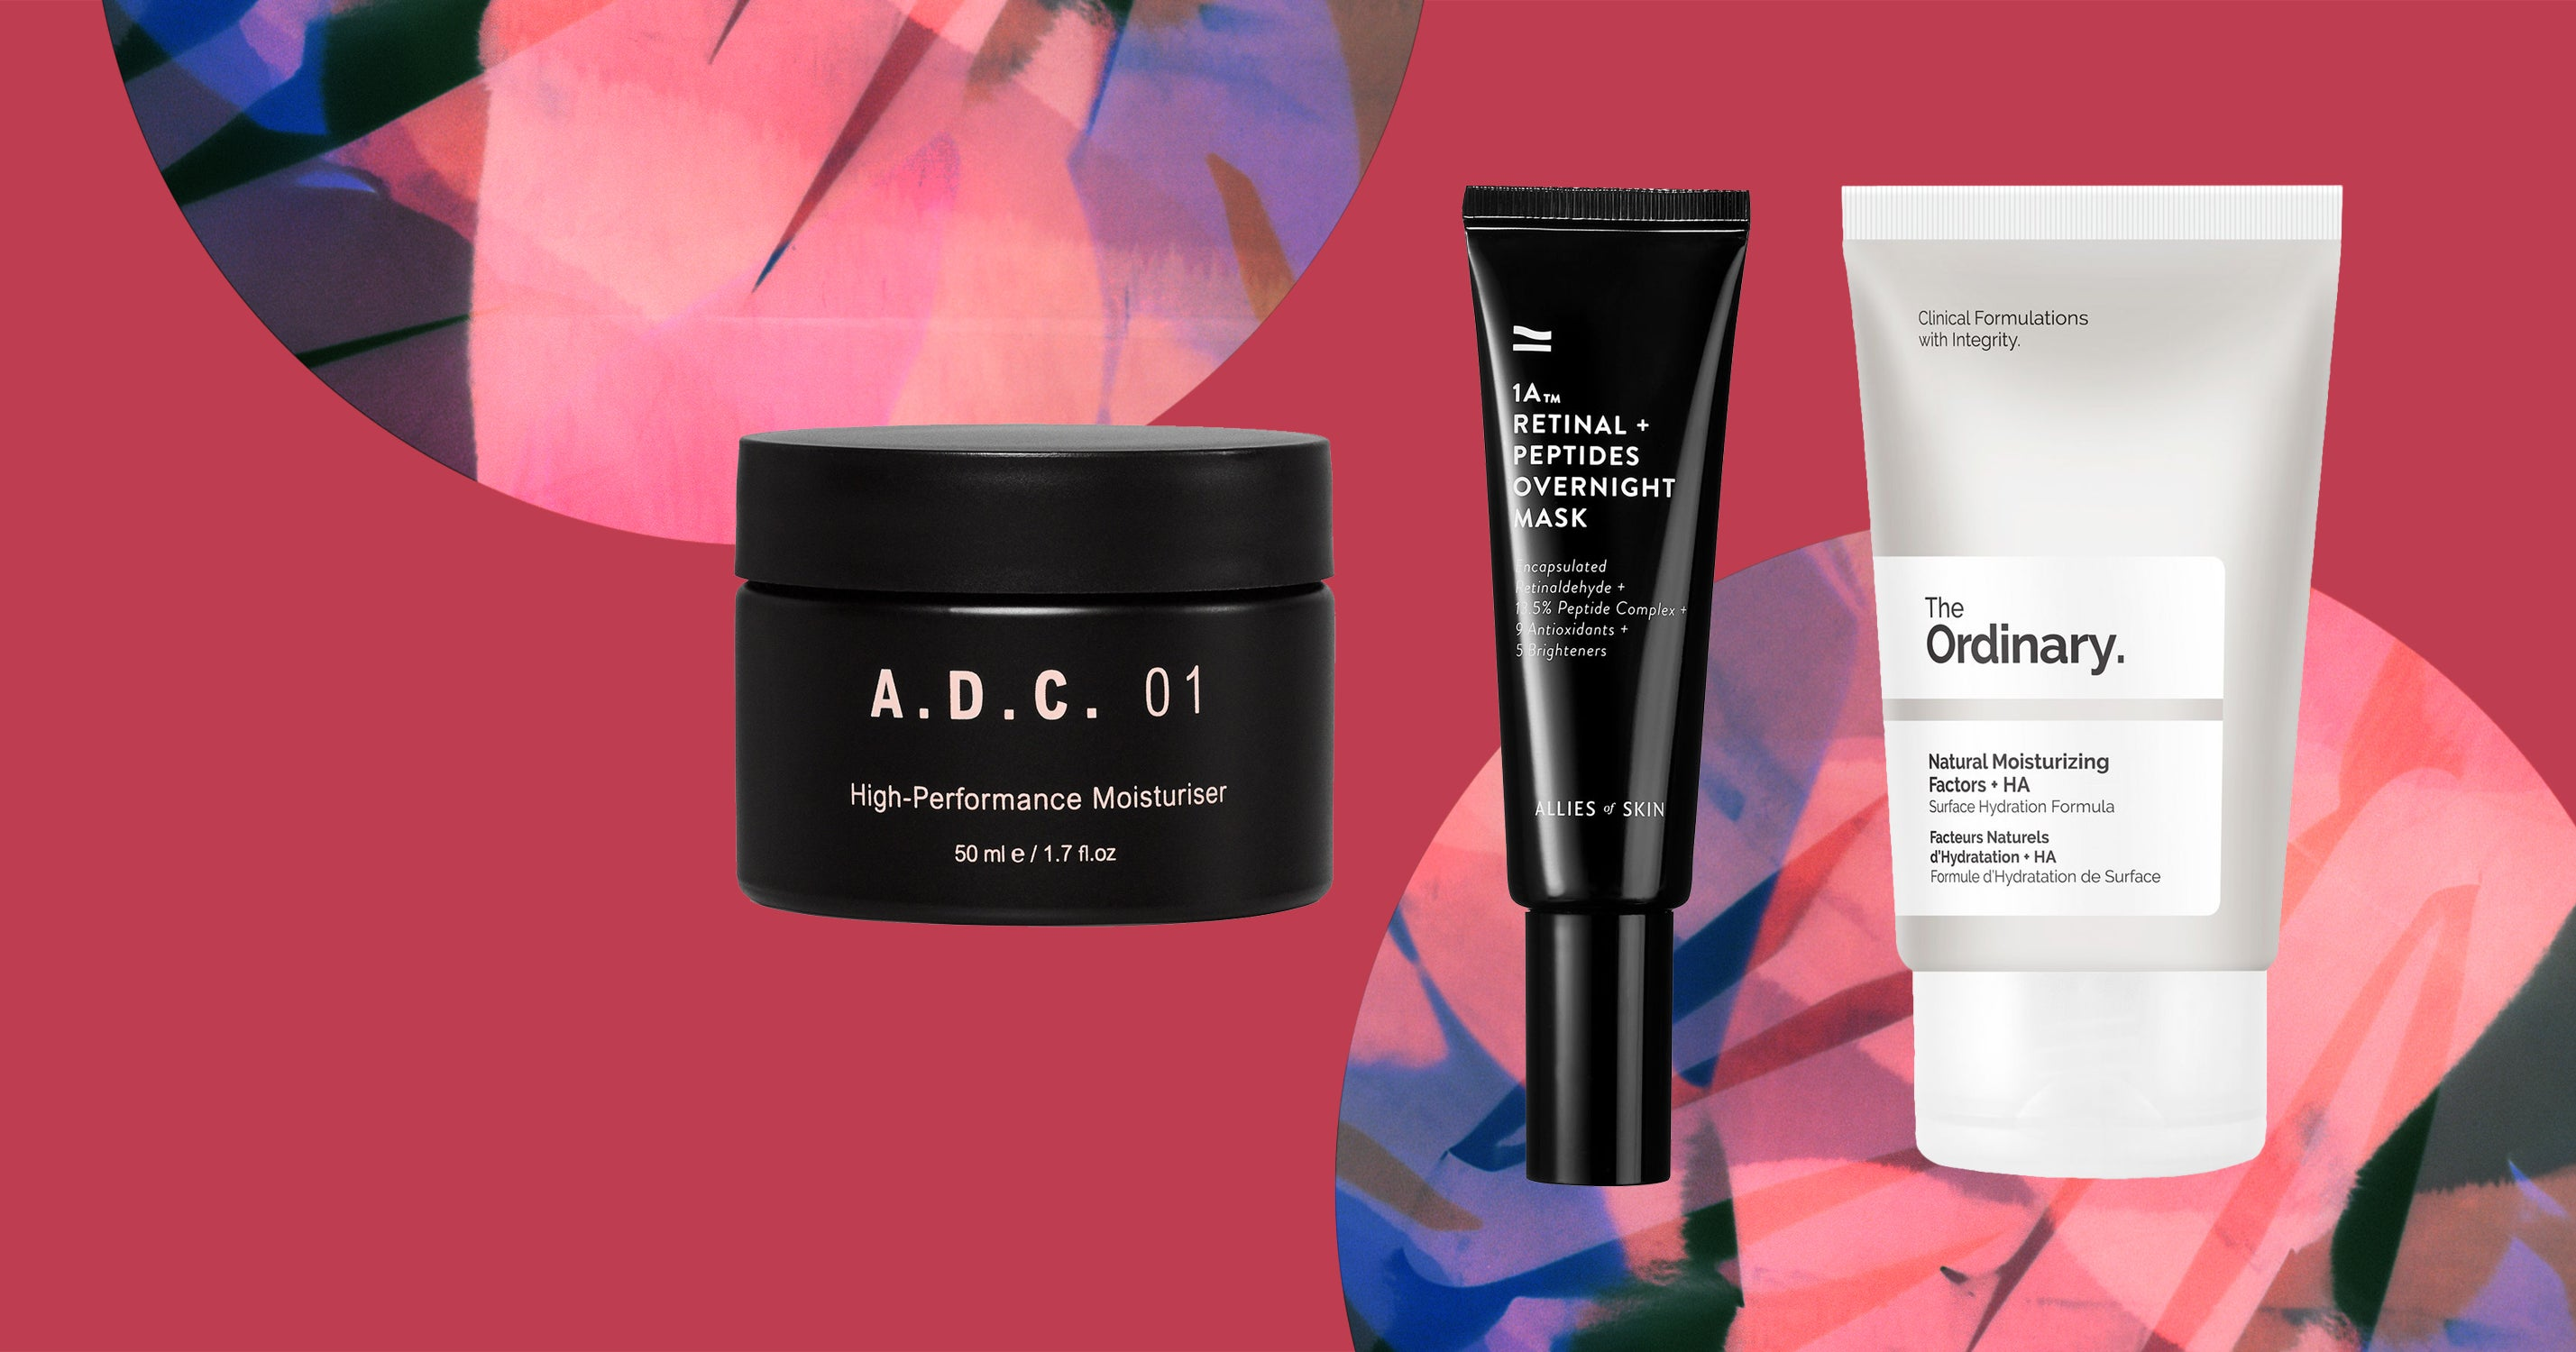 10 Multitasking Moisturisers To Hydrate, Treat Perfect In A Single Step